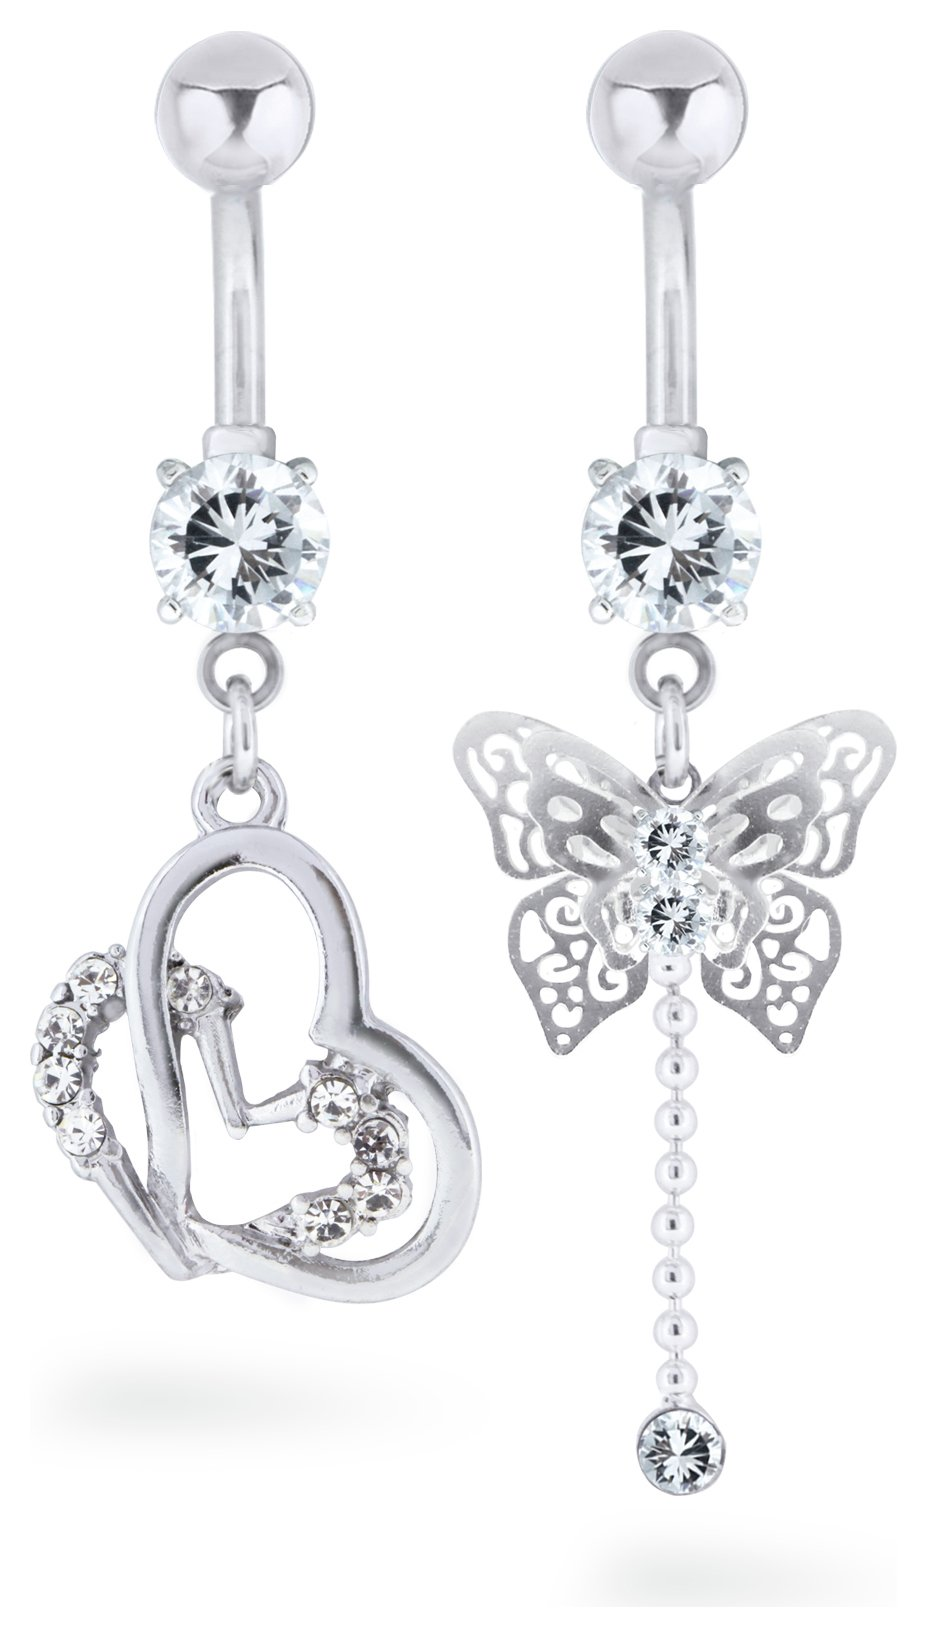 'State Of Mine Stainless Steel Butterfly Belly Bar - Set Of 2